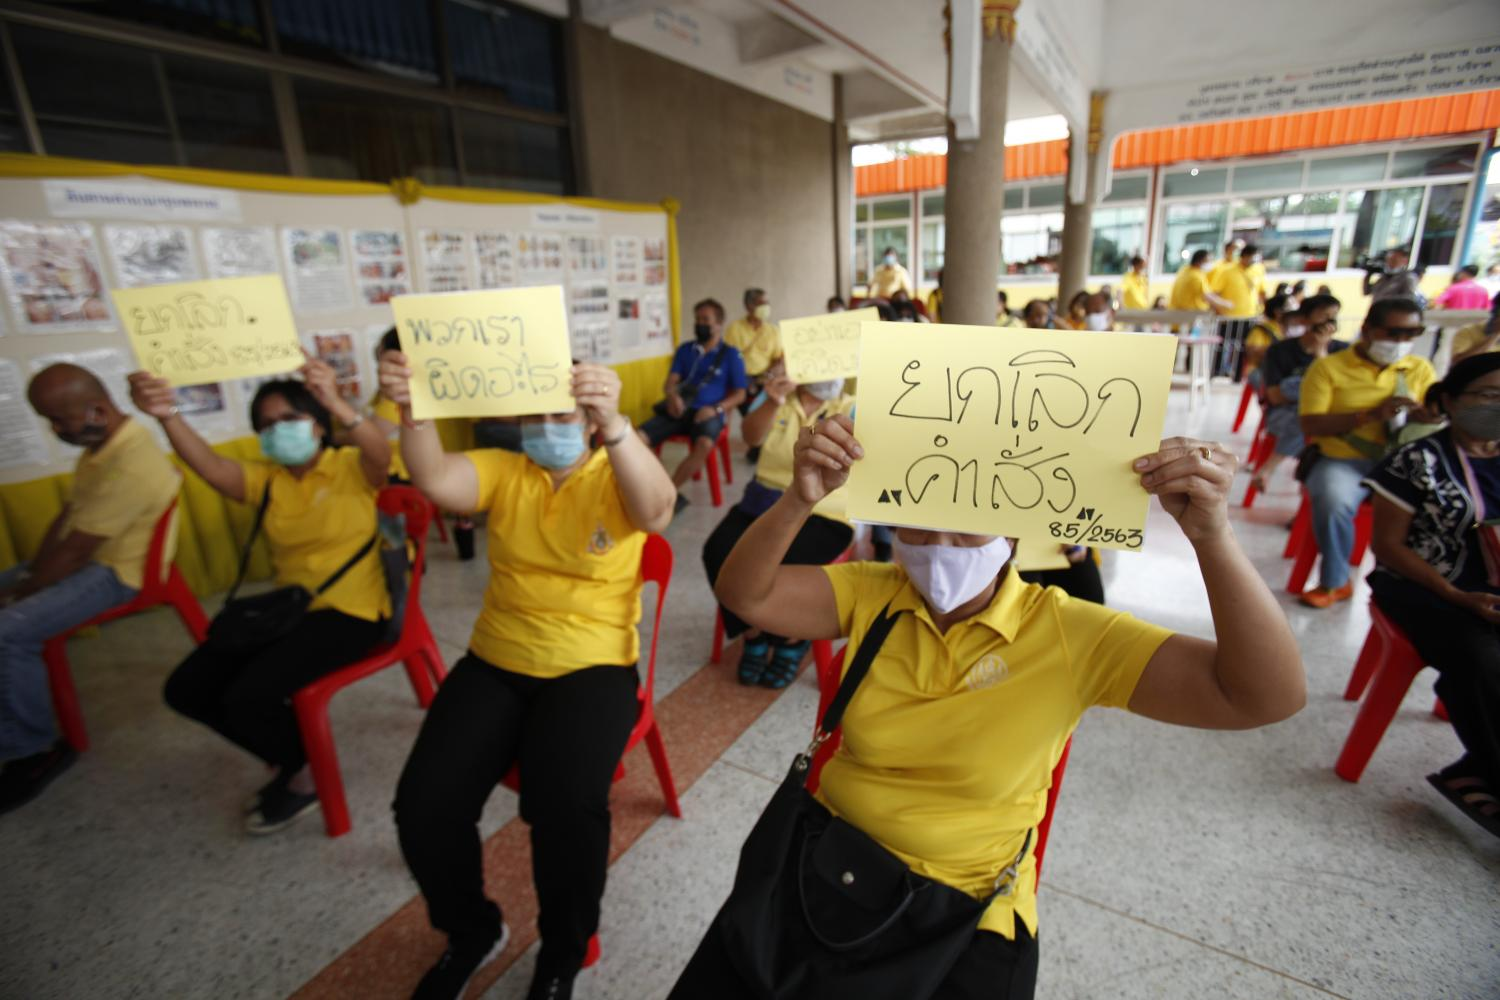 Suksapan staff hold placards demanding that management's lay-off scheme be scrapped. Nutthawat Wicheanbut